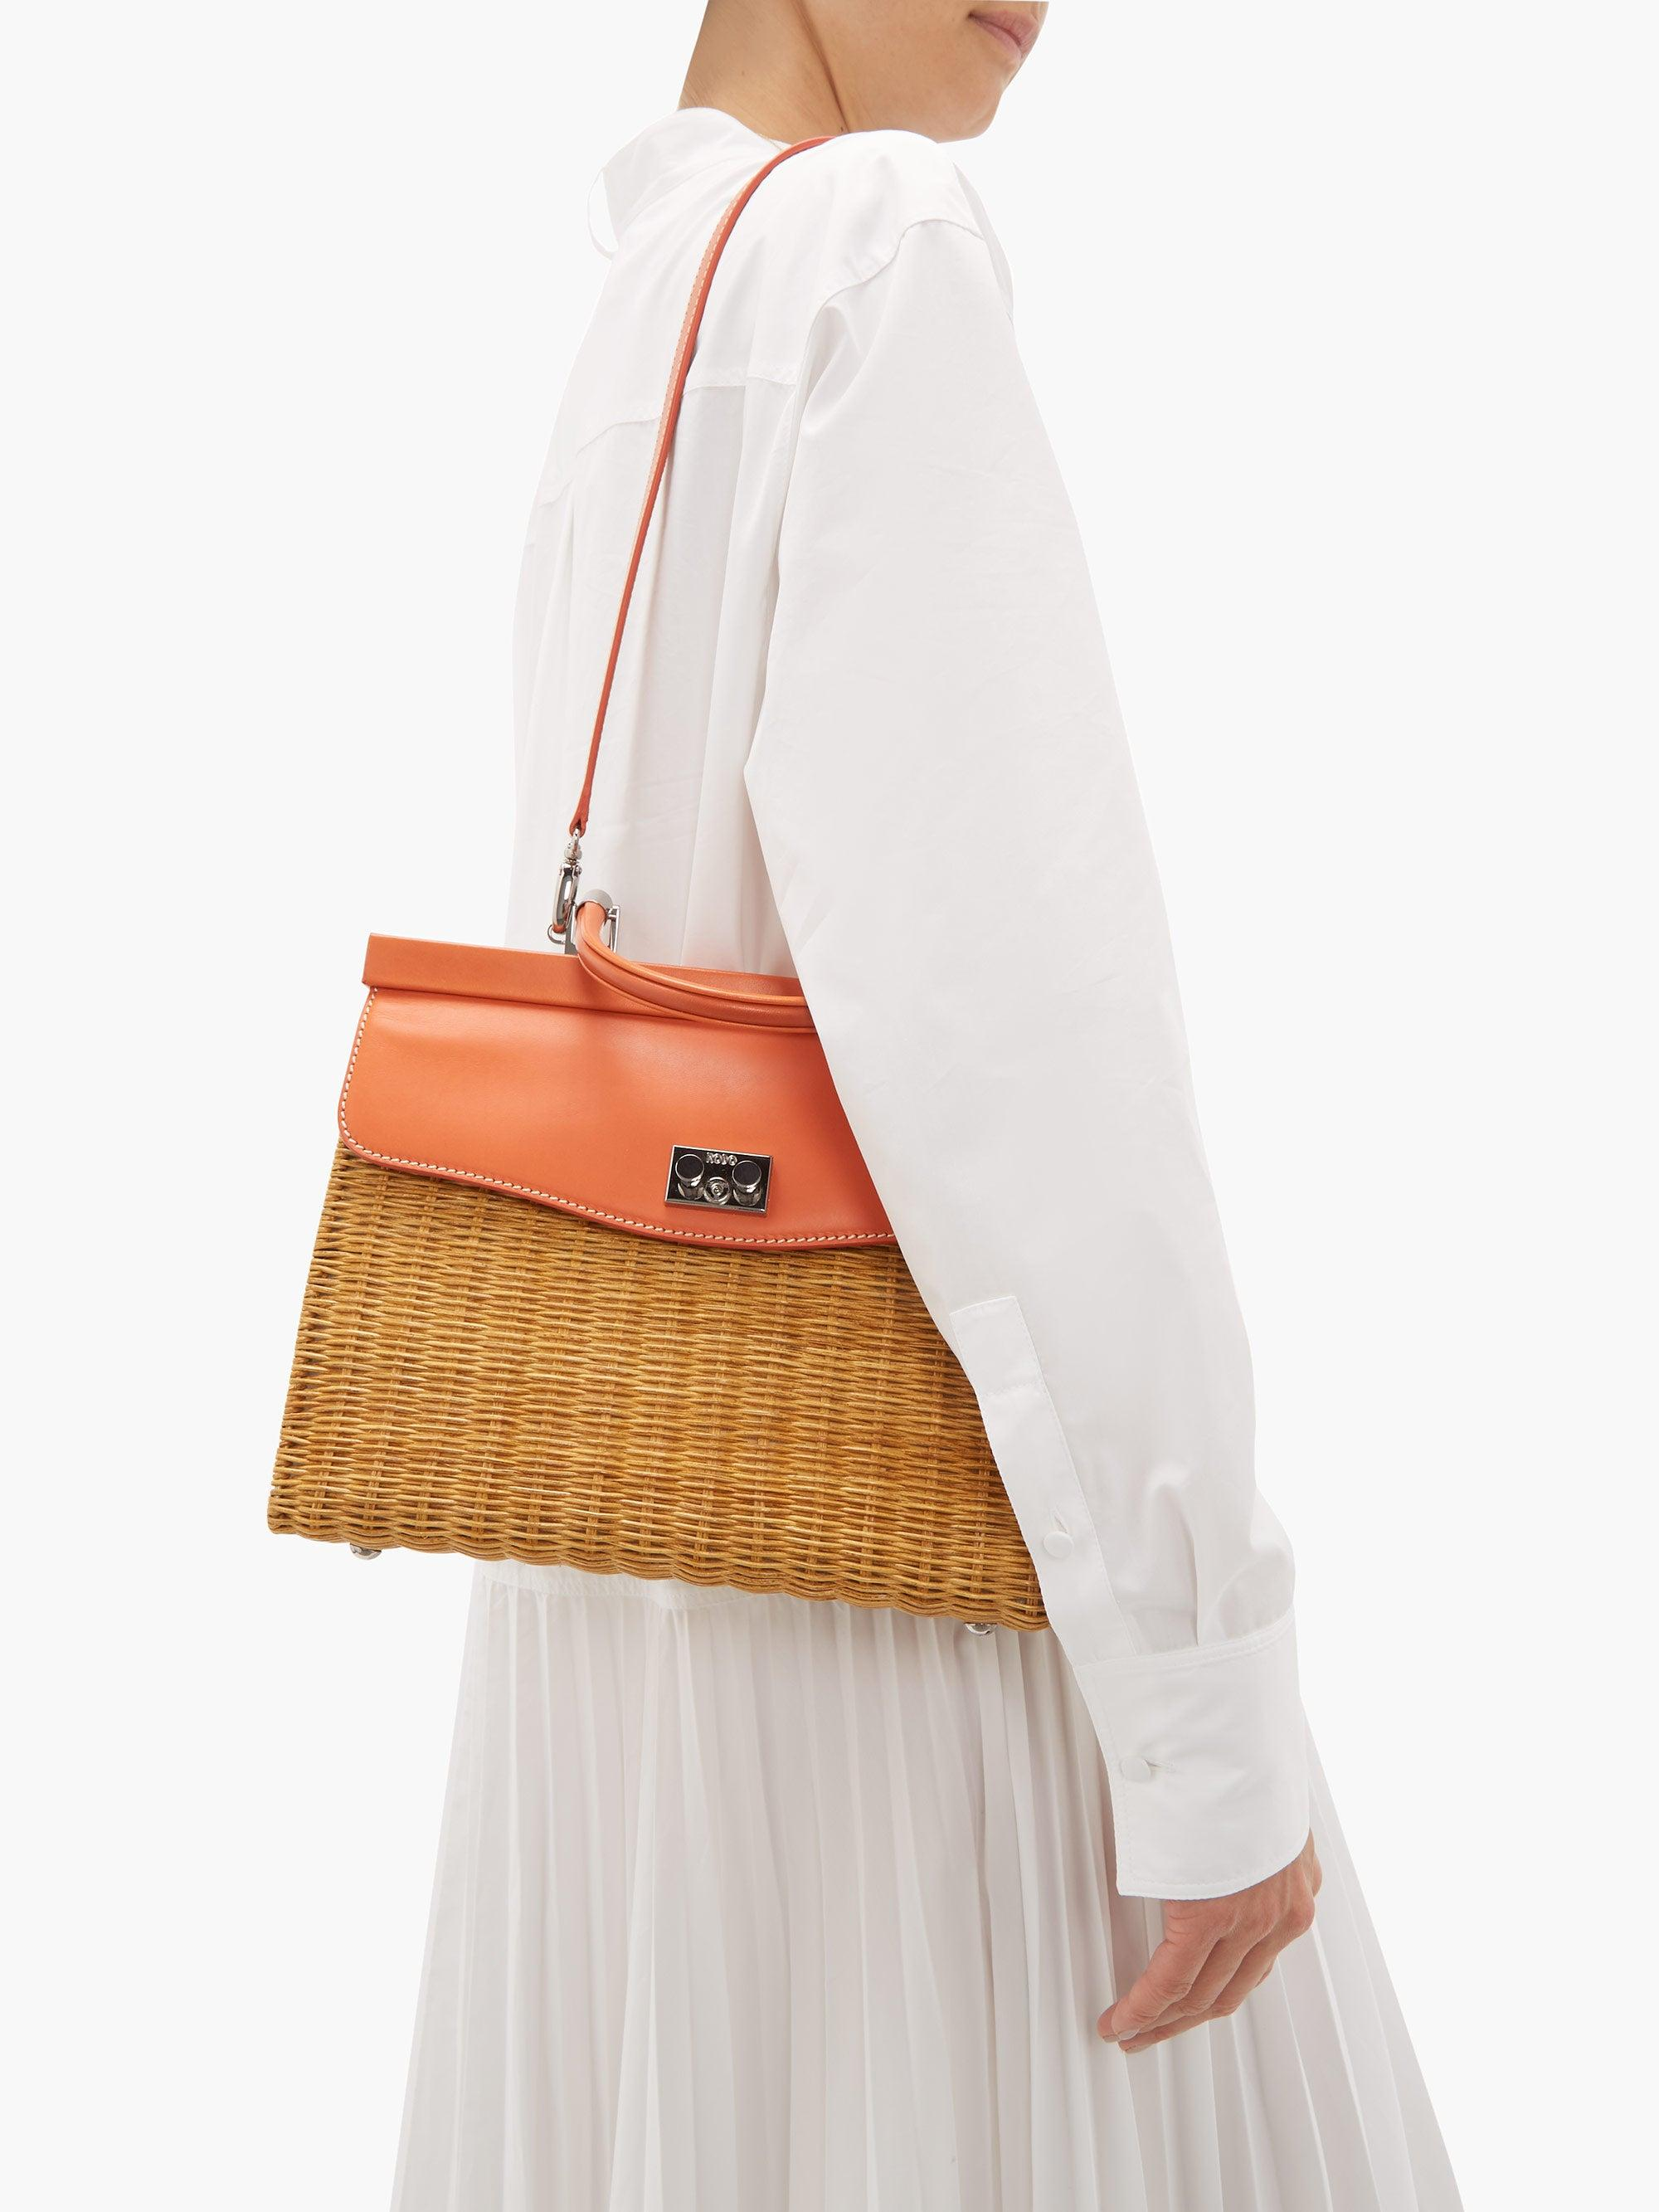 Rodo Leather And Wicker Top-handle Bag in Yellow & Orange (Orange)